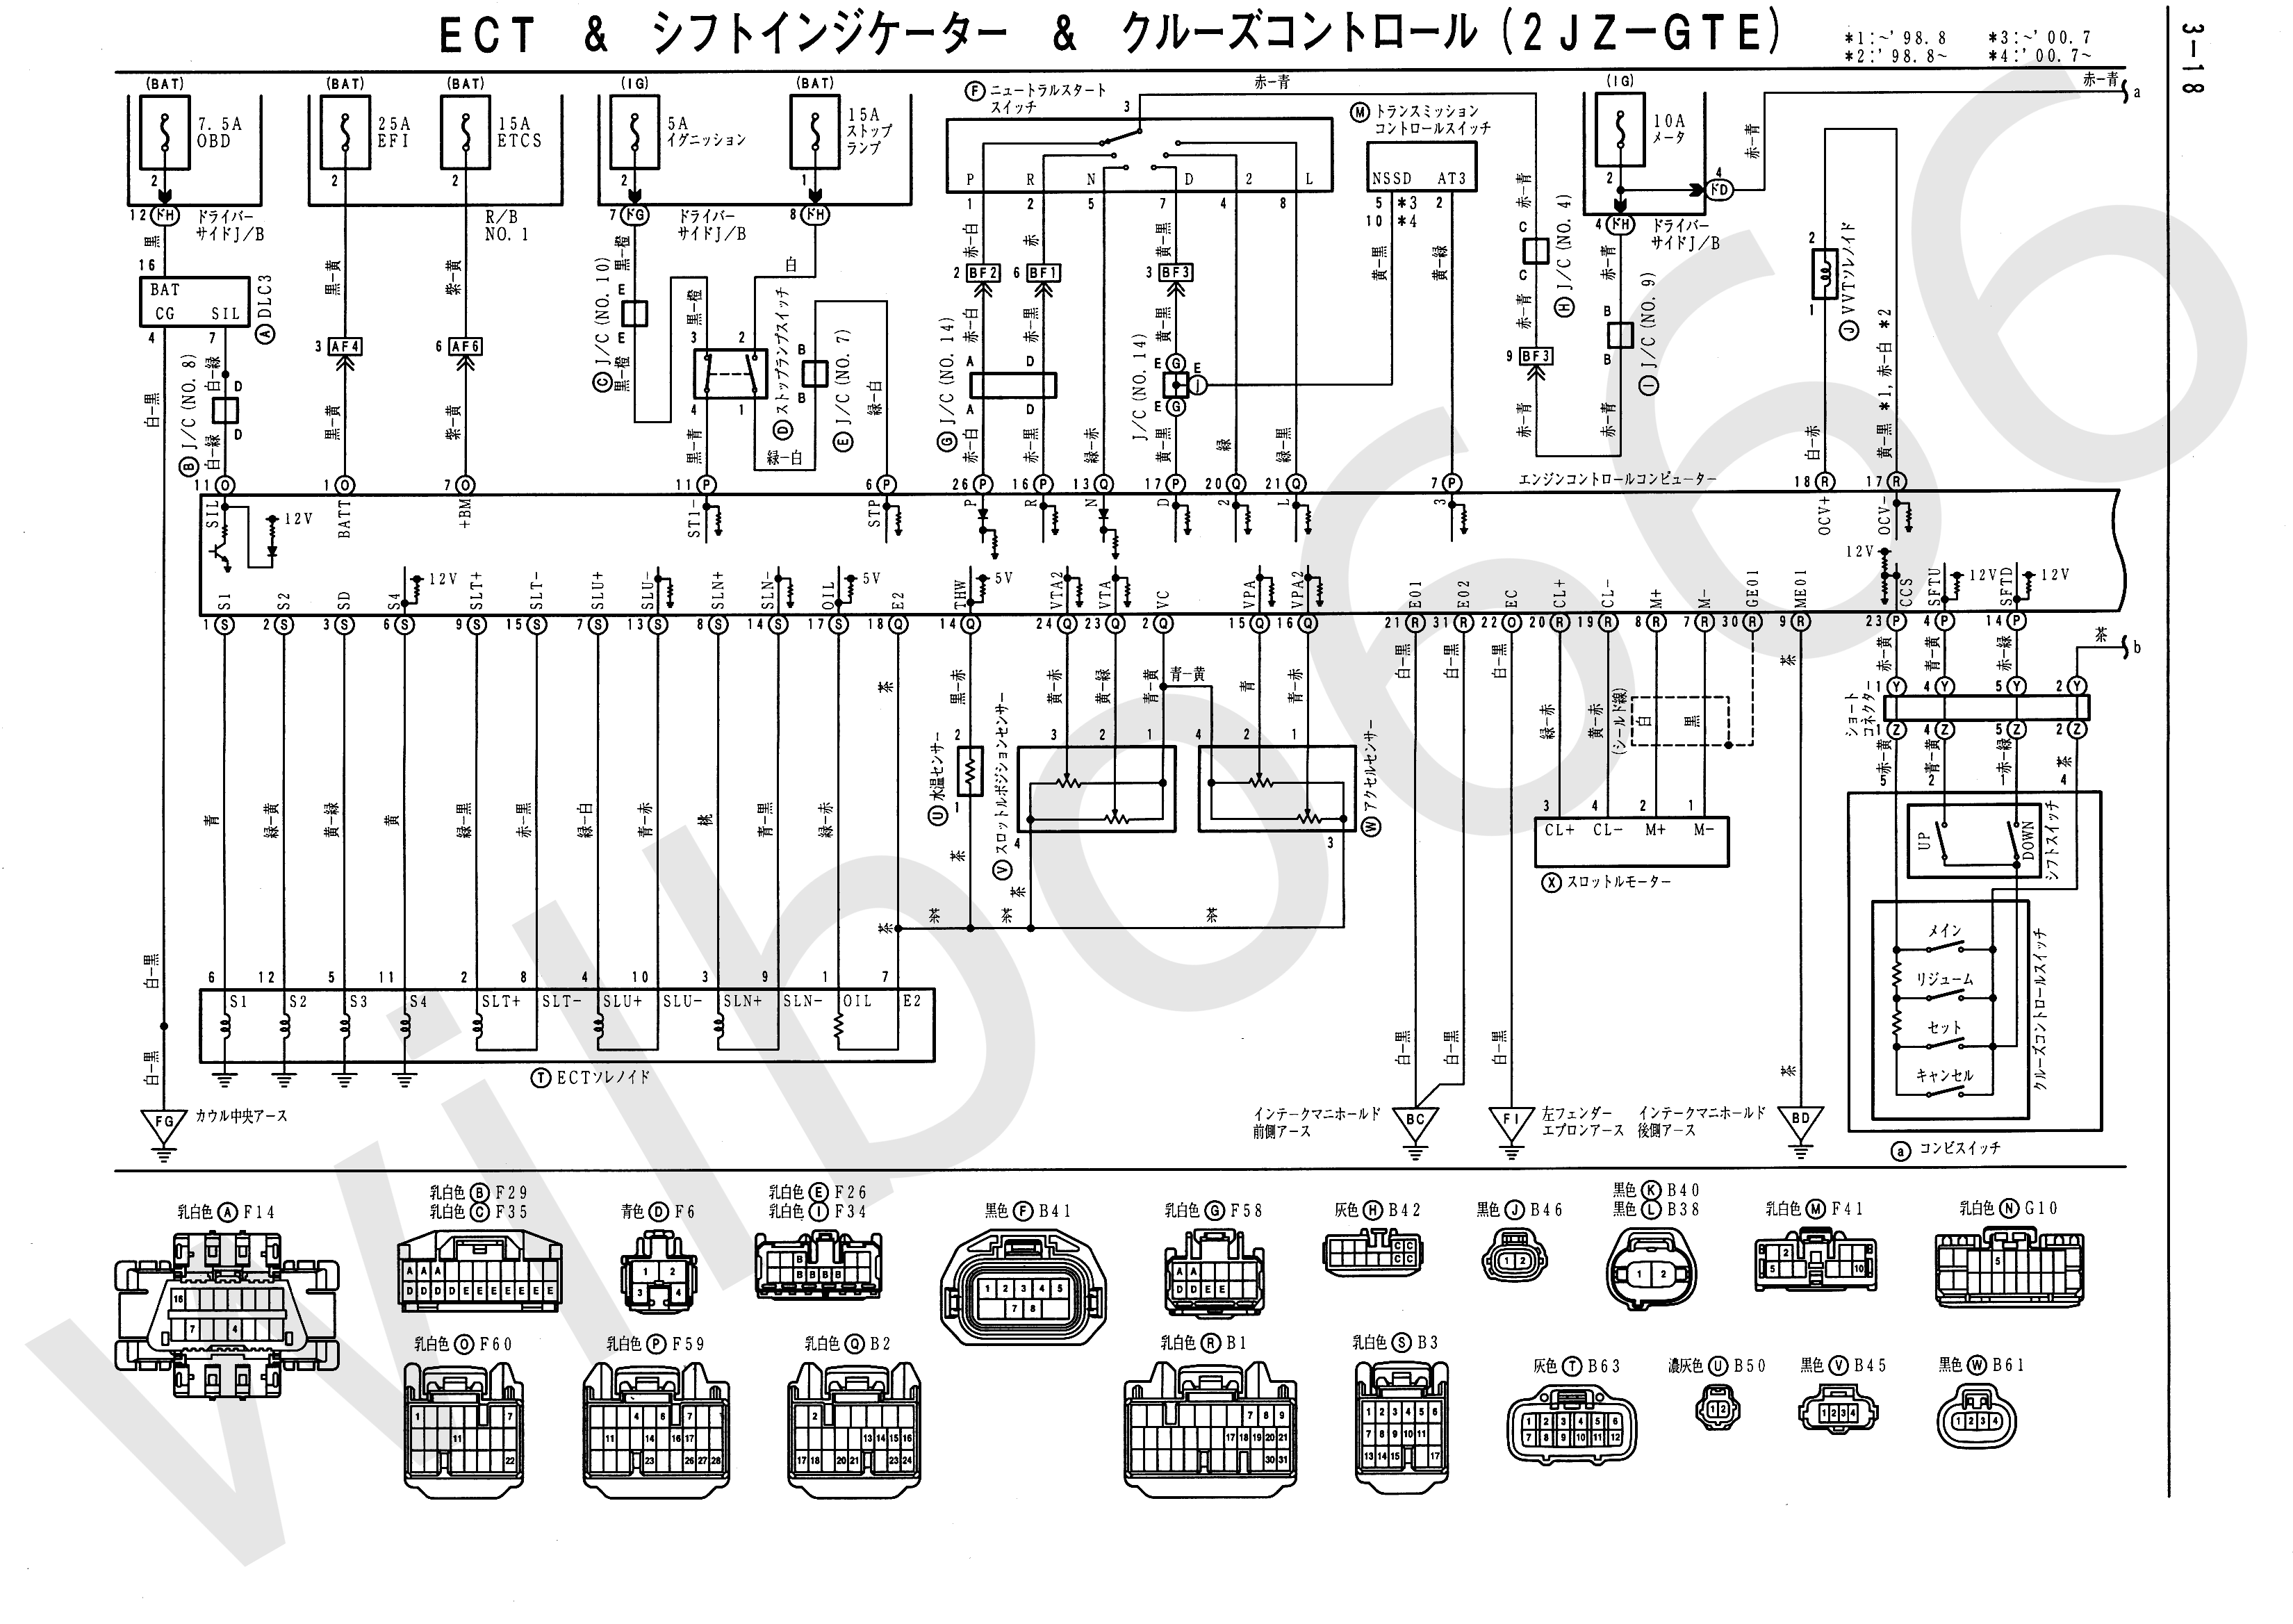 JZS161 Electrical Wiring Diagram 6748505 3 18 2jzgte wiring diagram coleman furnace wiring diagram \u2022 free wiring 1jzgte wiring harness at fashall.co